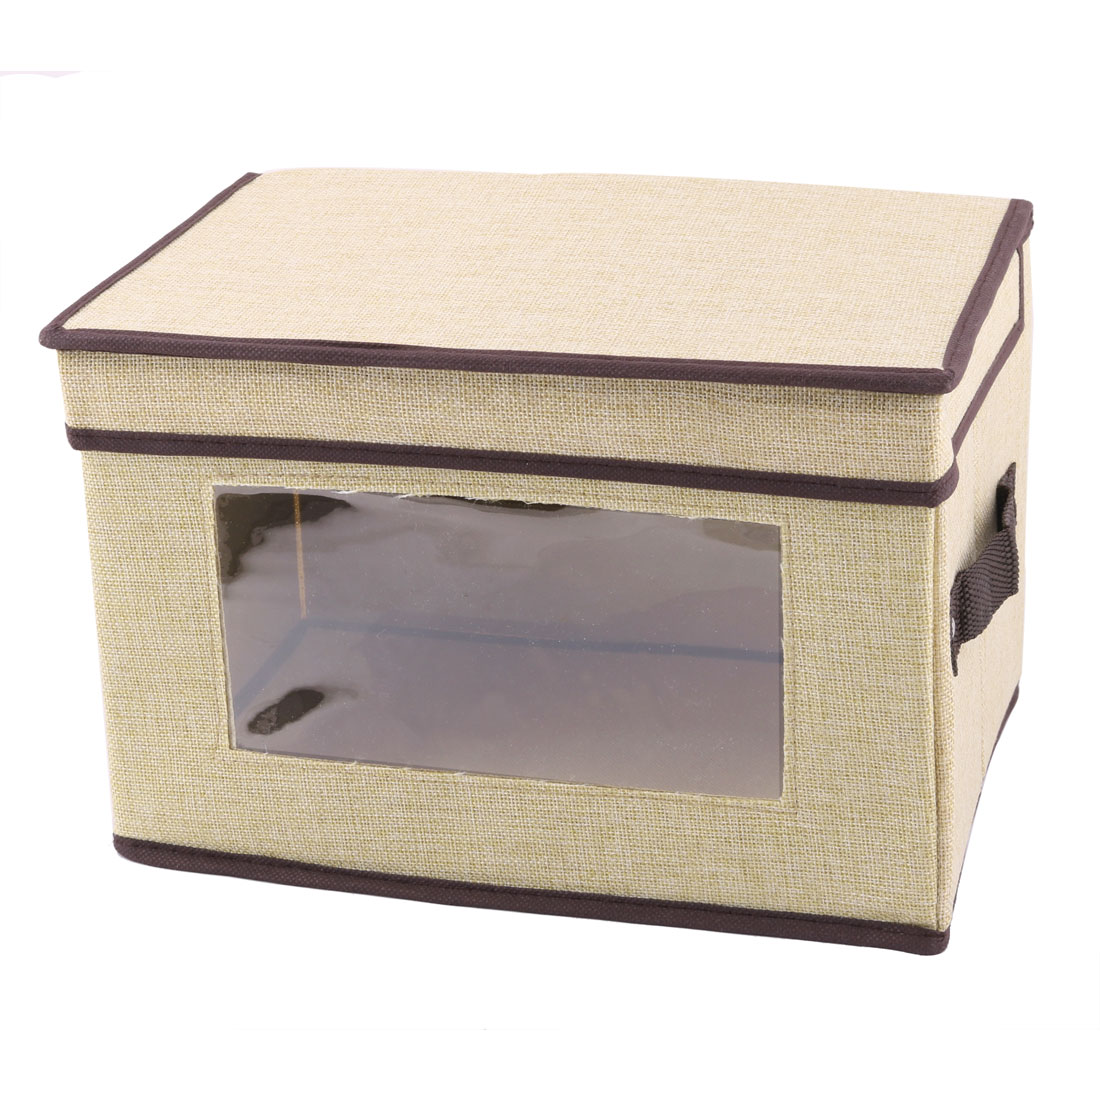 Home 38 x 25 x 25cm Beige Linen Foldable Clothing Quilt Holder Case Storage Box